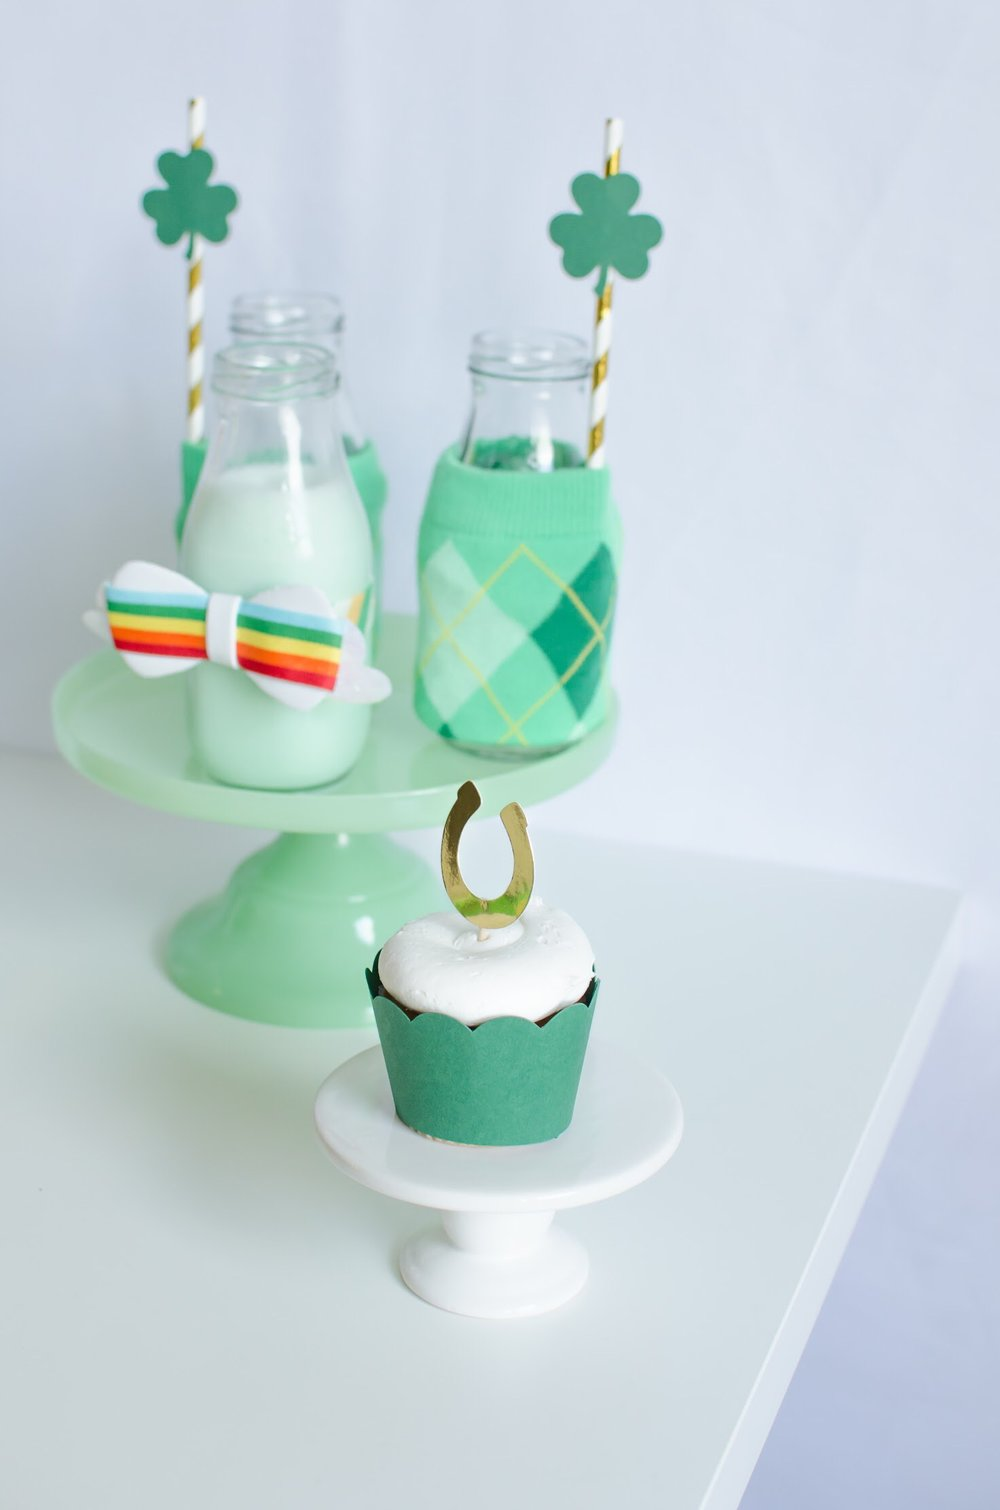 See all the green party details including these horseshoe cupcake toppers on Mint Event Design www.minteventdesign.com #partyideas #partydecorations #breakfastfood #saintpatricksday #stpatricksday